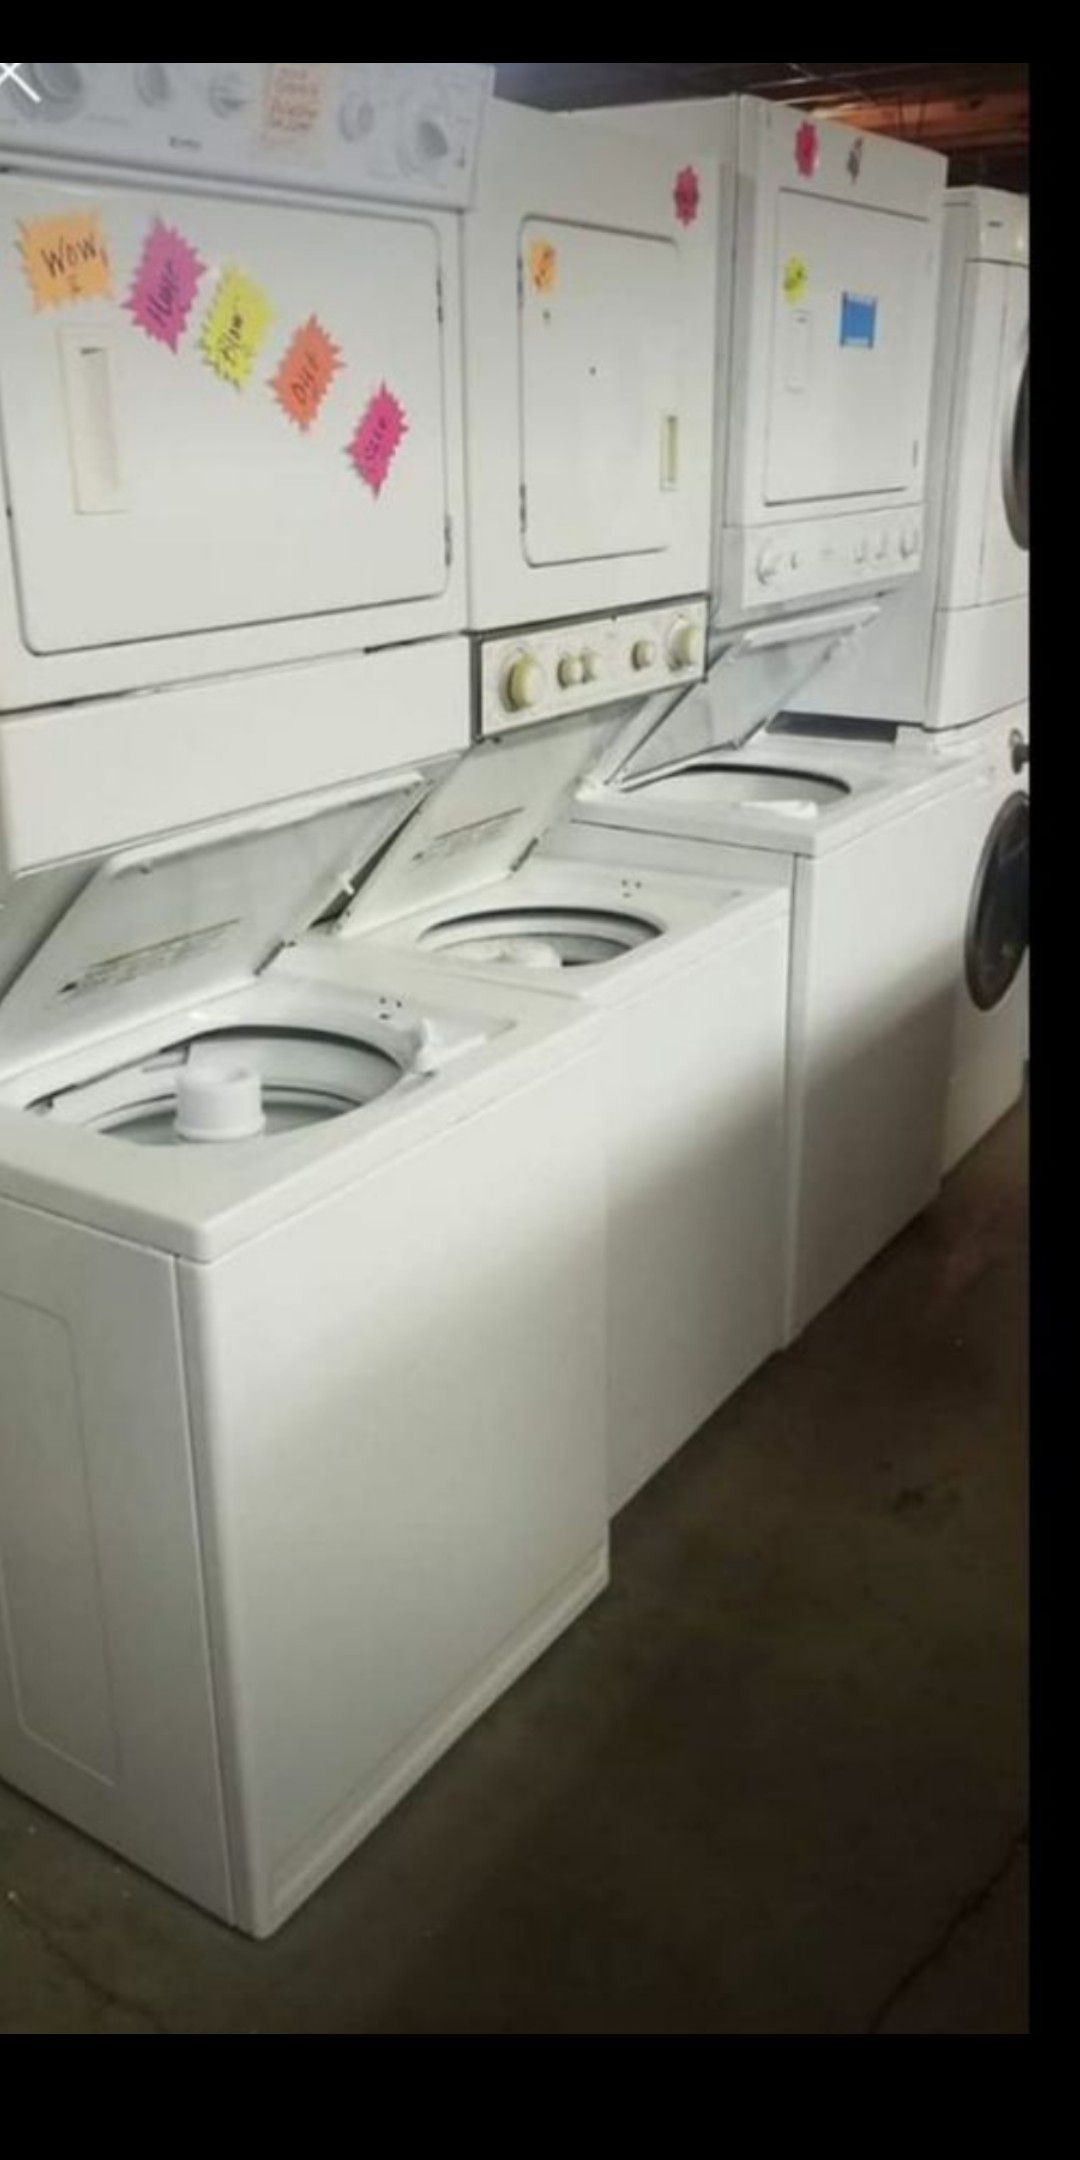 ⭐QUALITY USED APPLIANCES 90 DAY TO PAY SAME AS CASH. 21639 PACIFIC HWY S DES MOINES🌴🍃